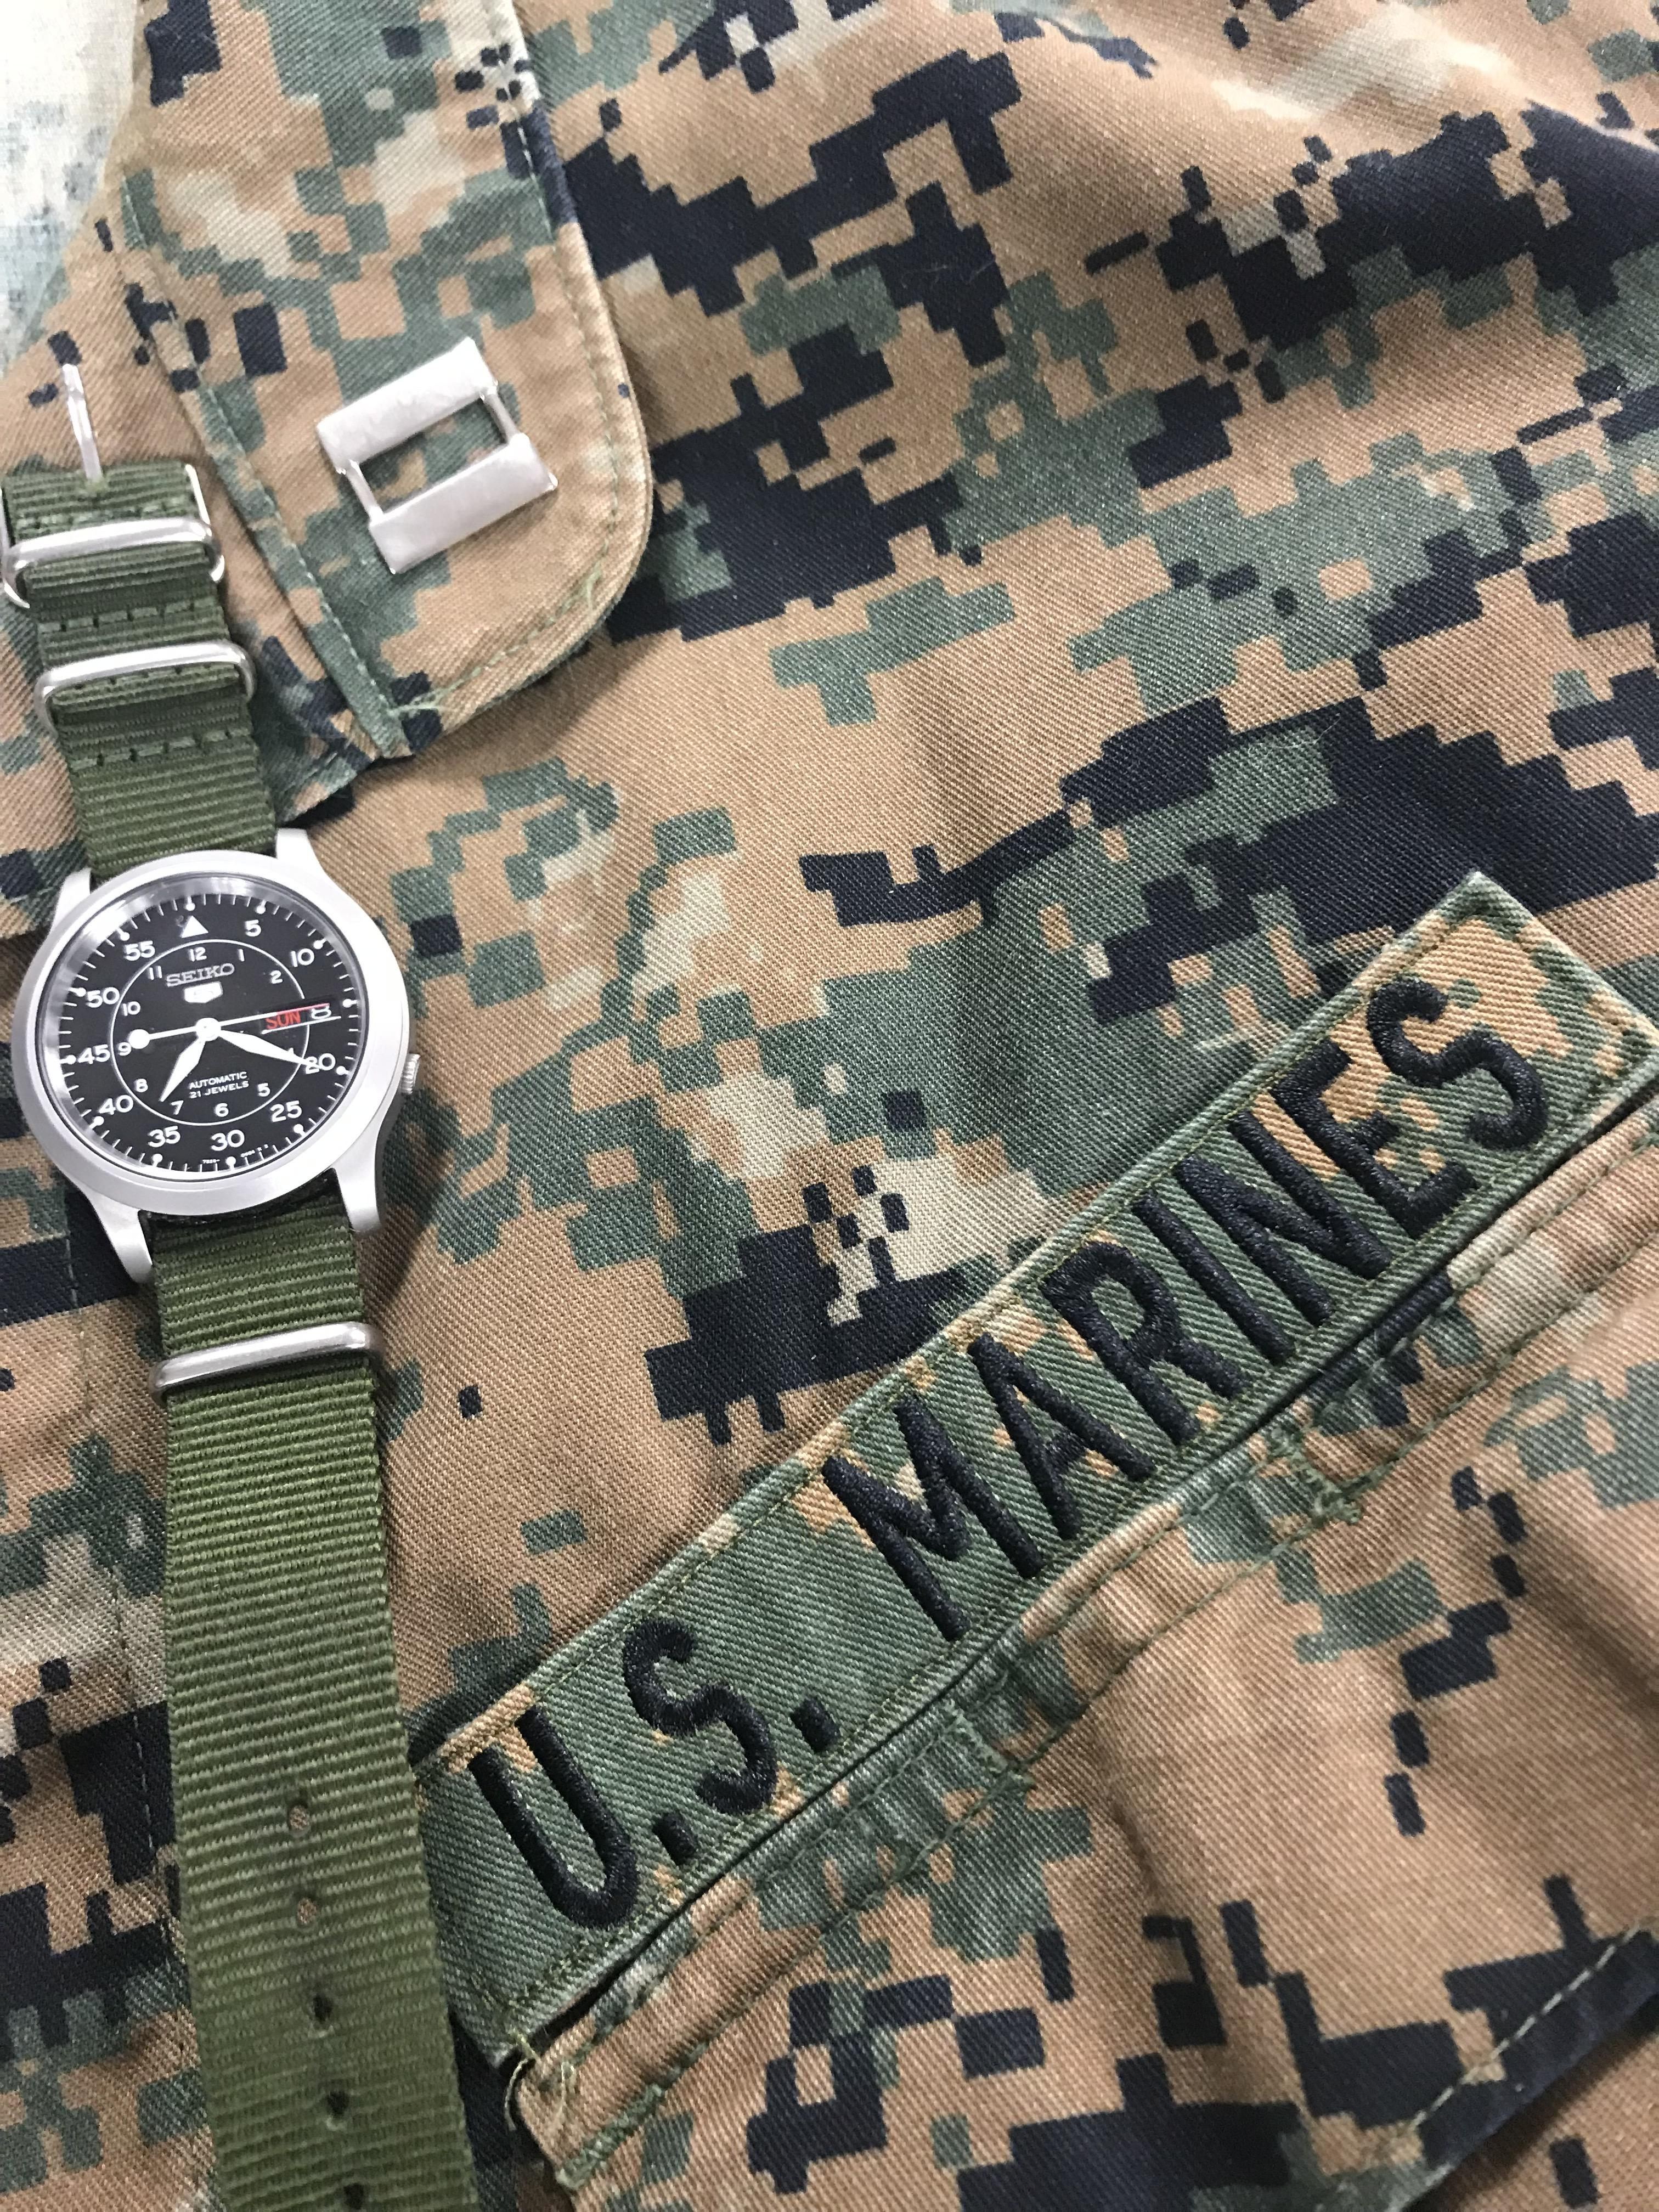 Seiko Snk809 Promotion Present And First Automatic In